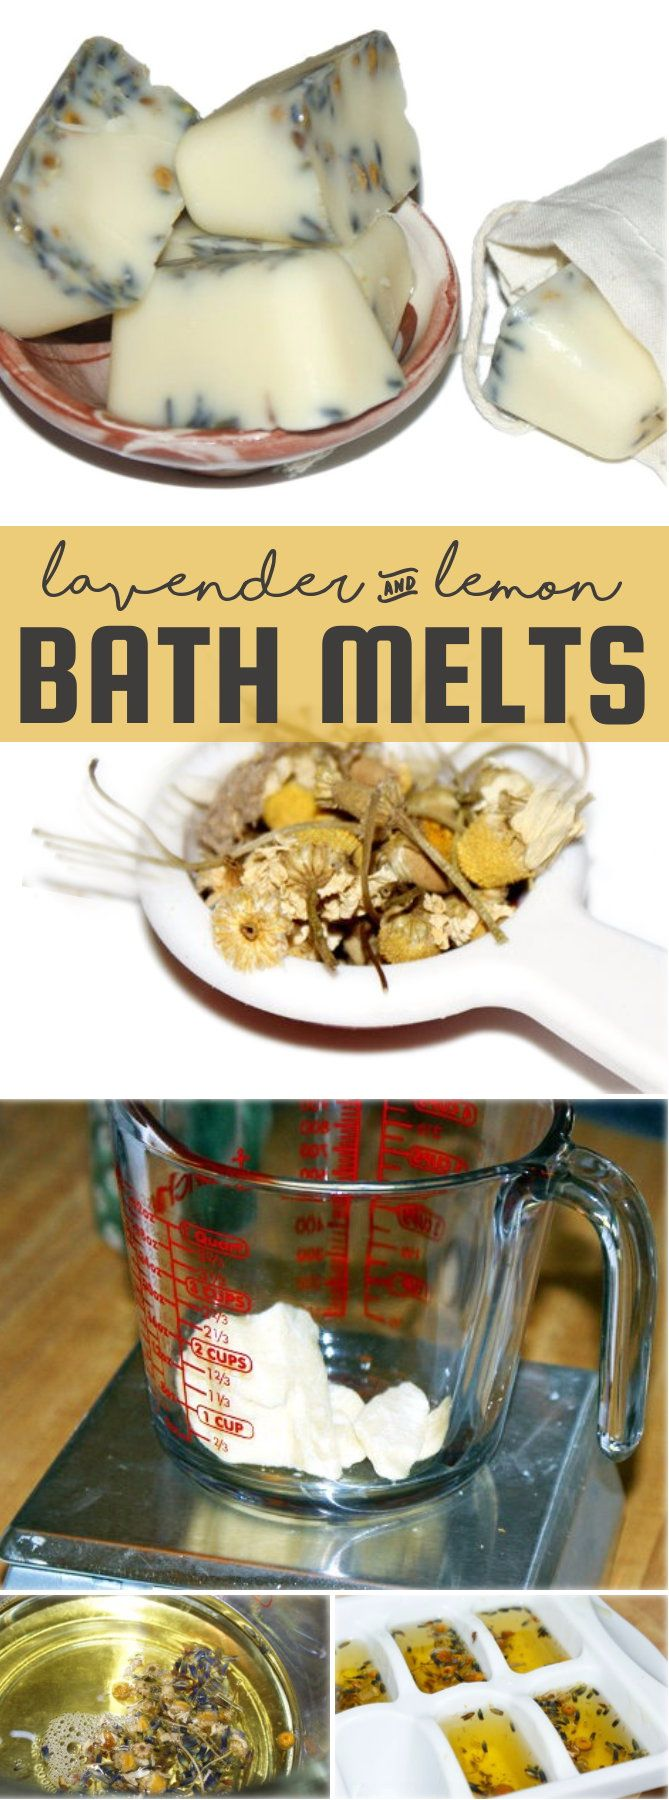 This simple organic lemon lavender bath melts recipe is crafted using organic ingredients and is great for moisturizing skin and lifting your spirits.